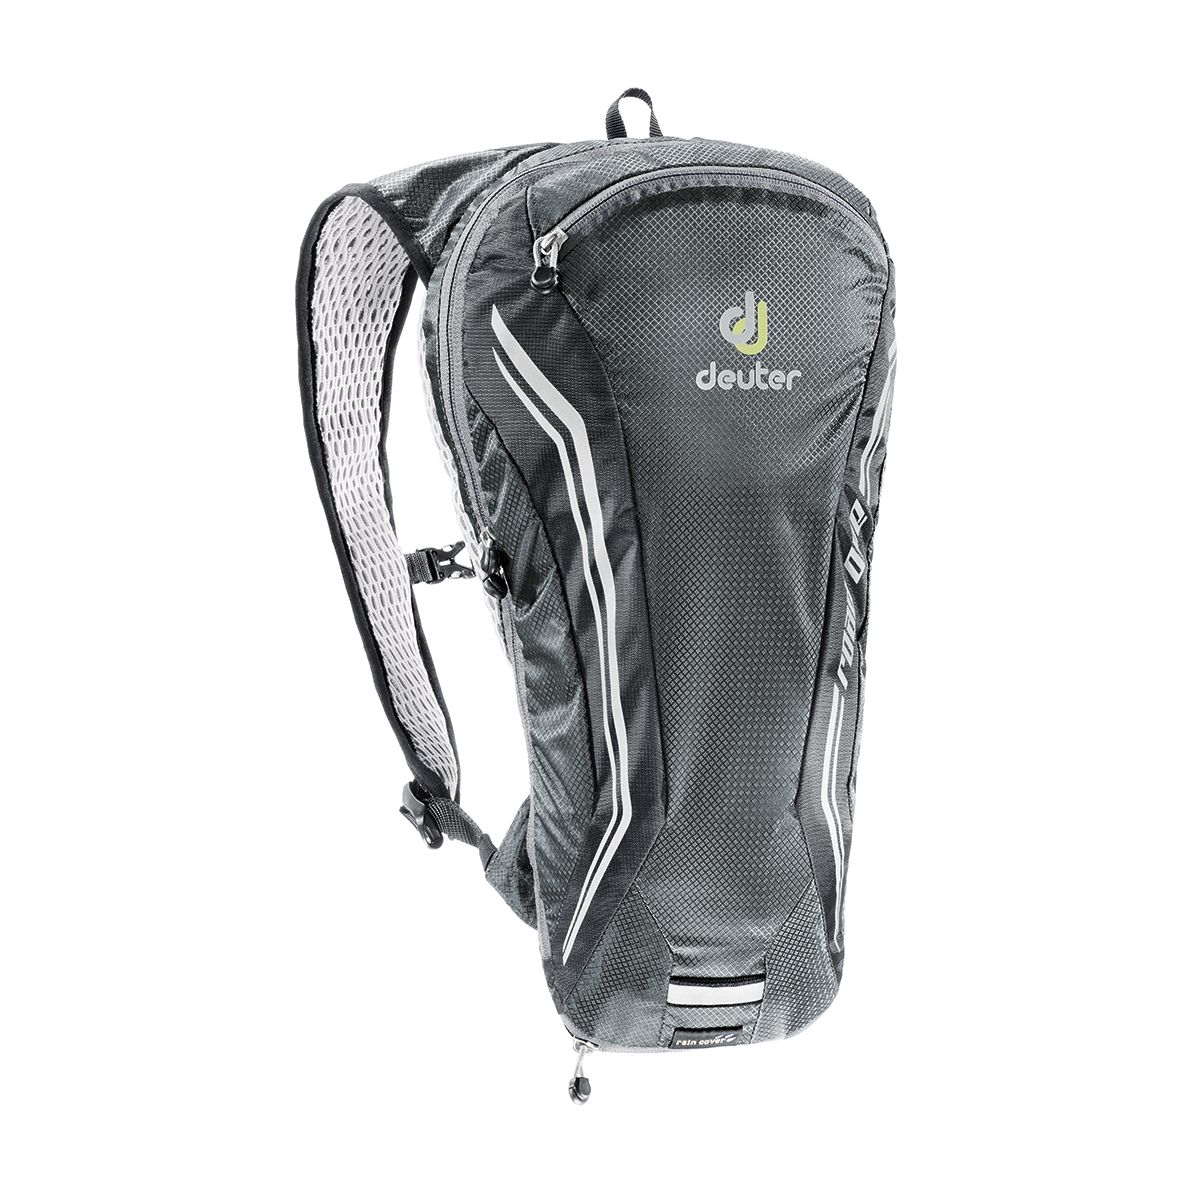 deuter ROAD ONE backpack | Travel bags